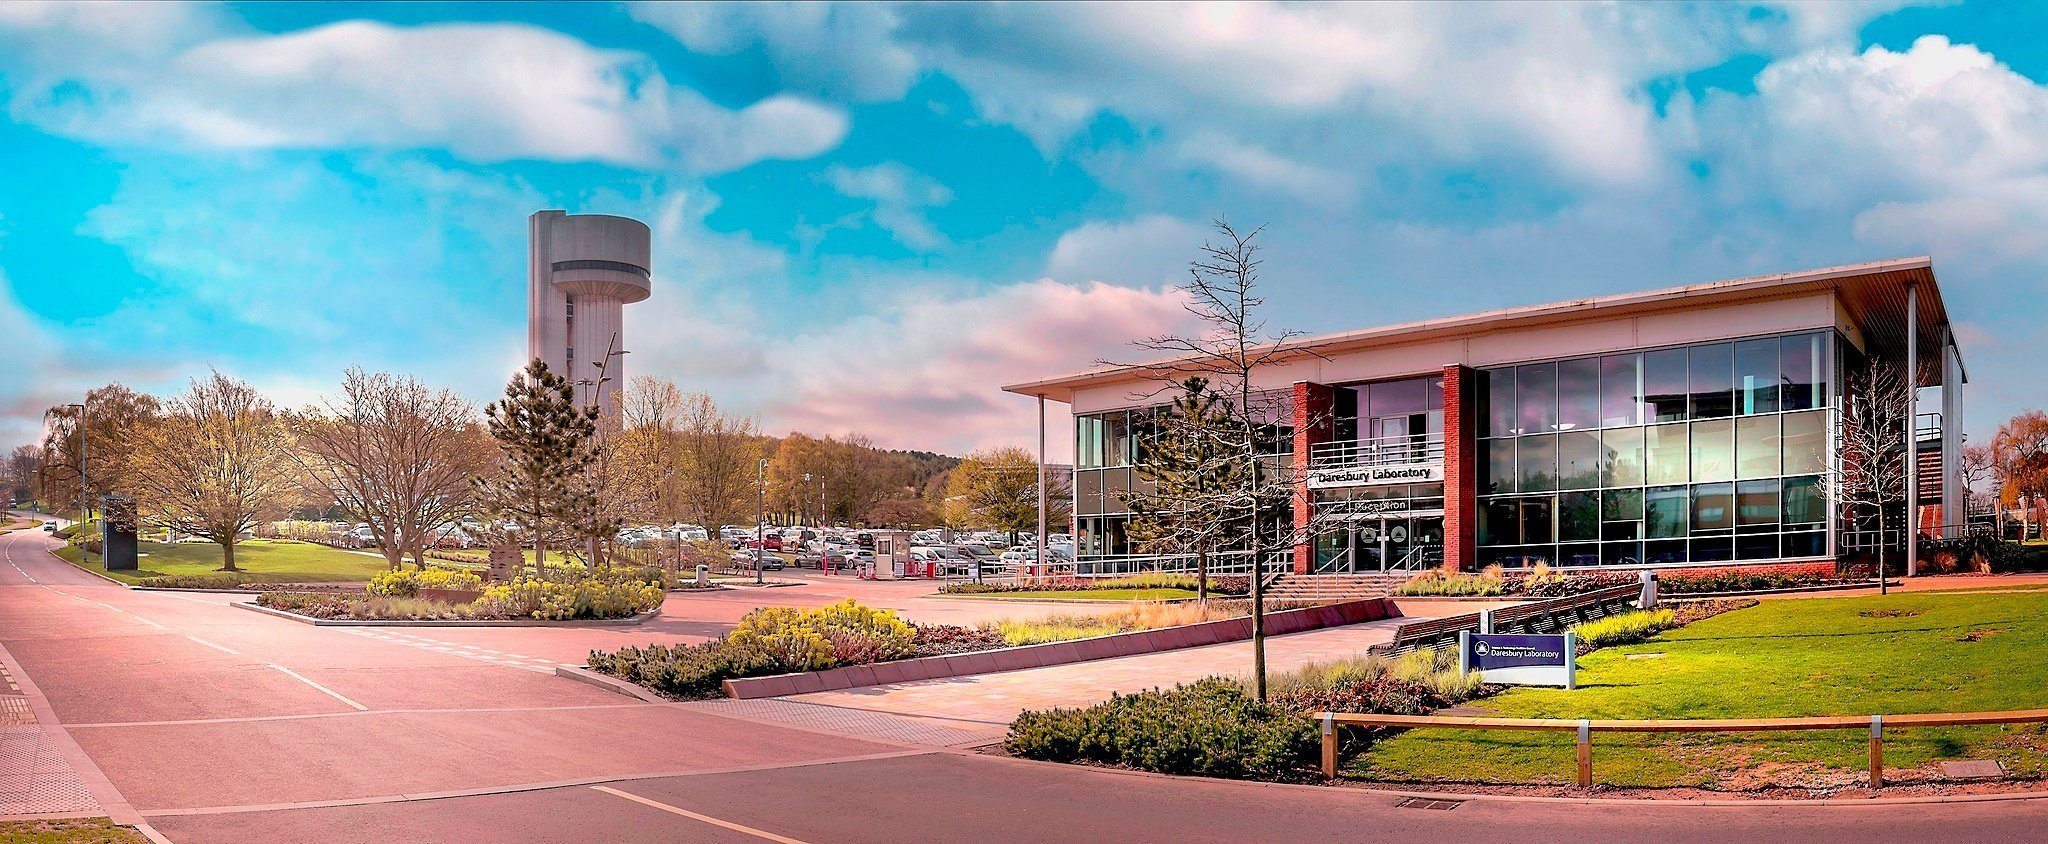 Five high-tech businesses locate to STFC's Daresbury Laboratory - Business  Manchester